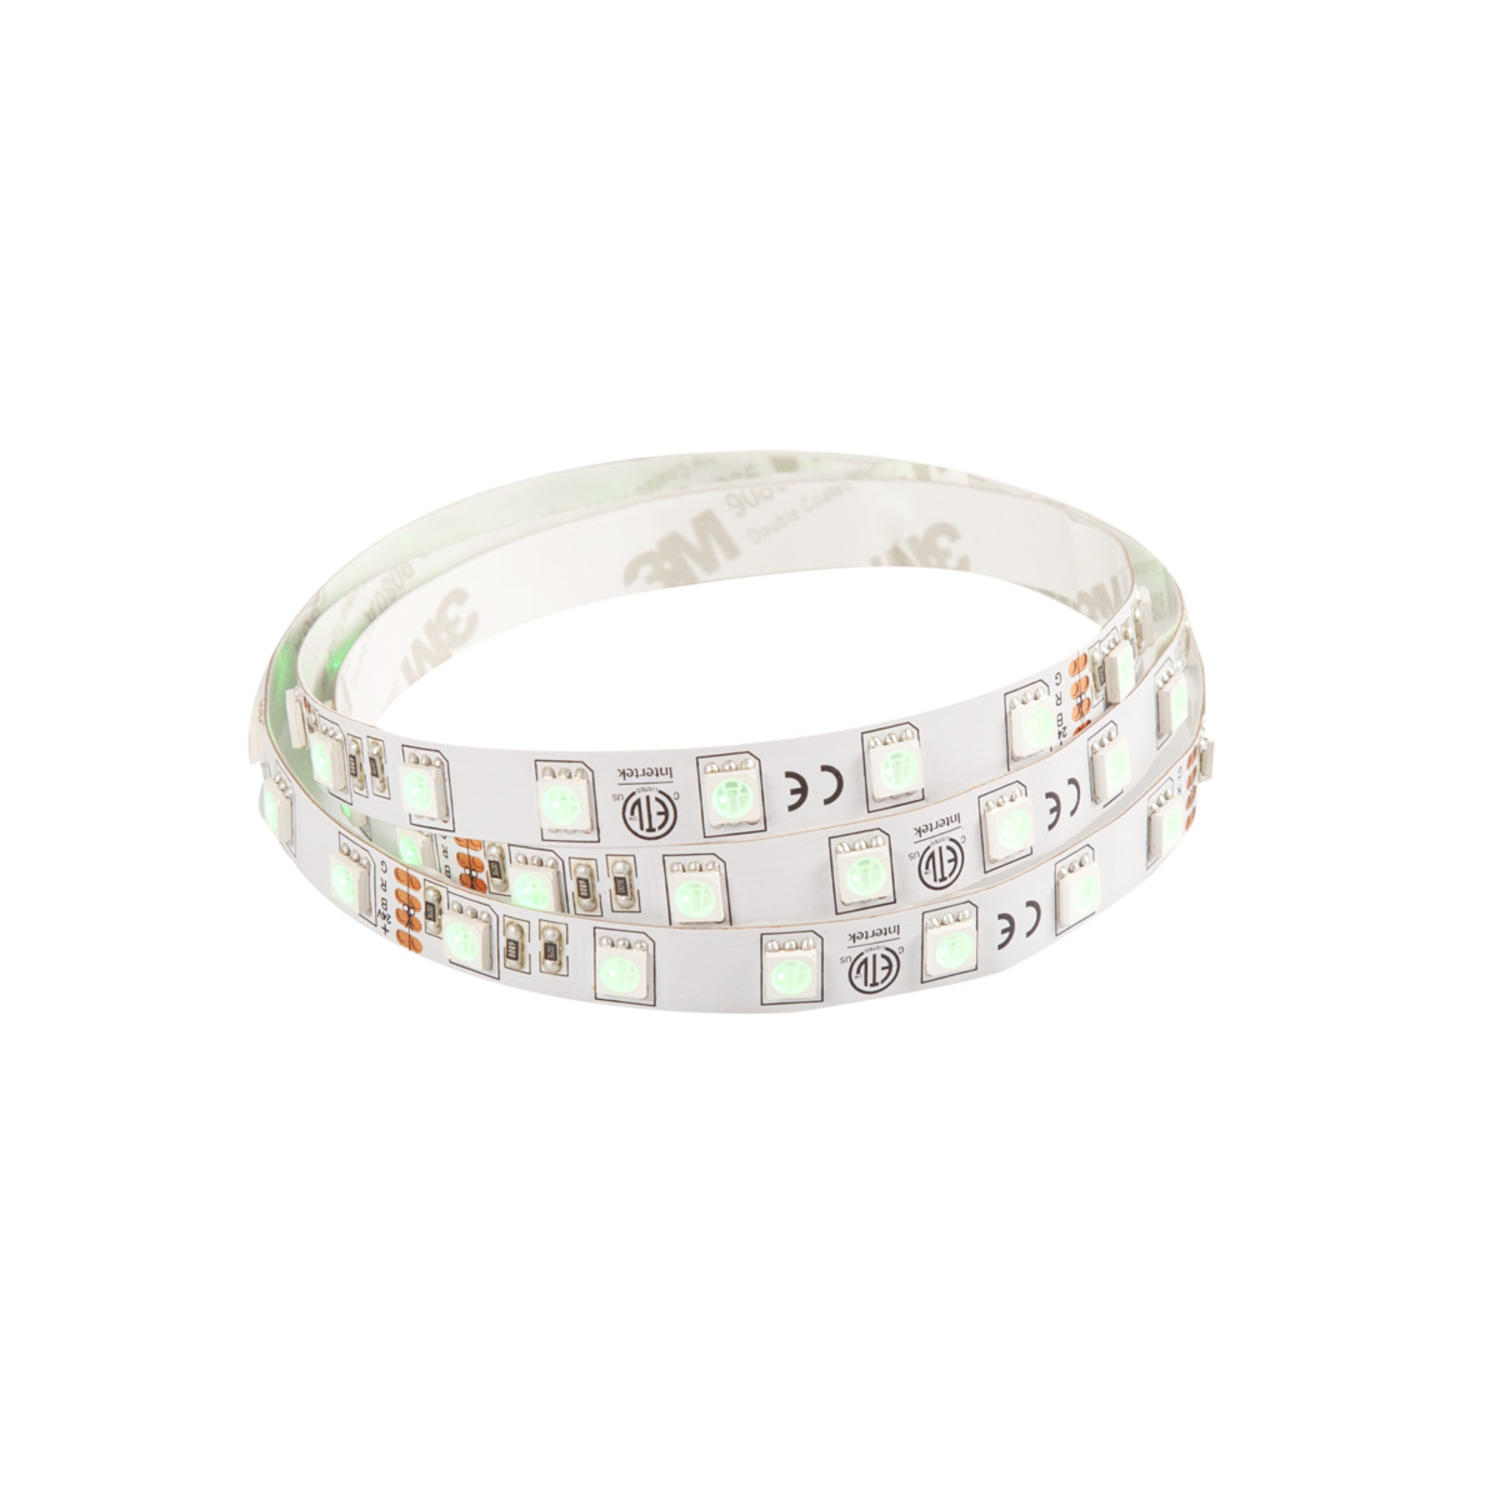 LED strip RX IP20 24V RGB 5m